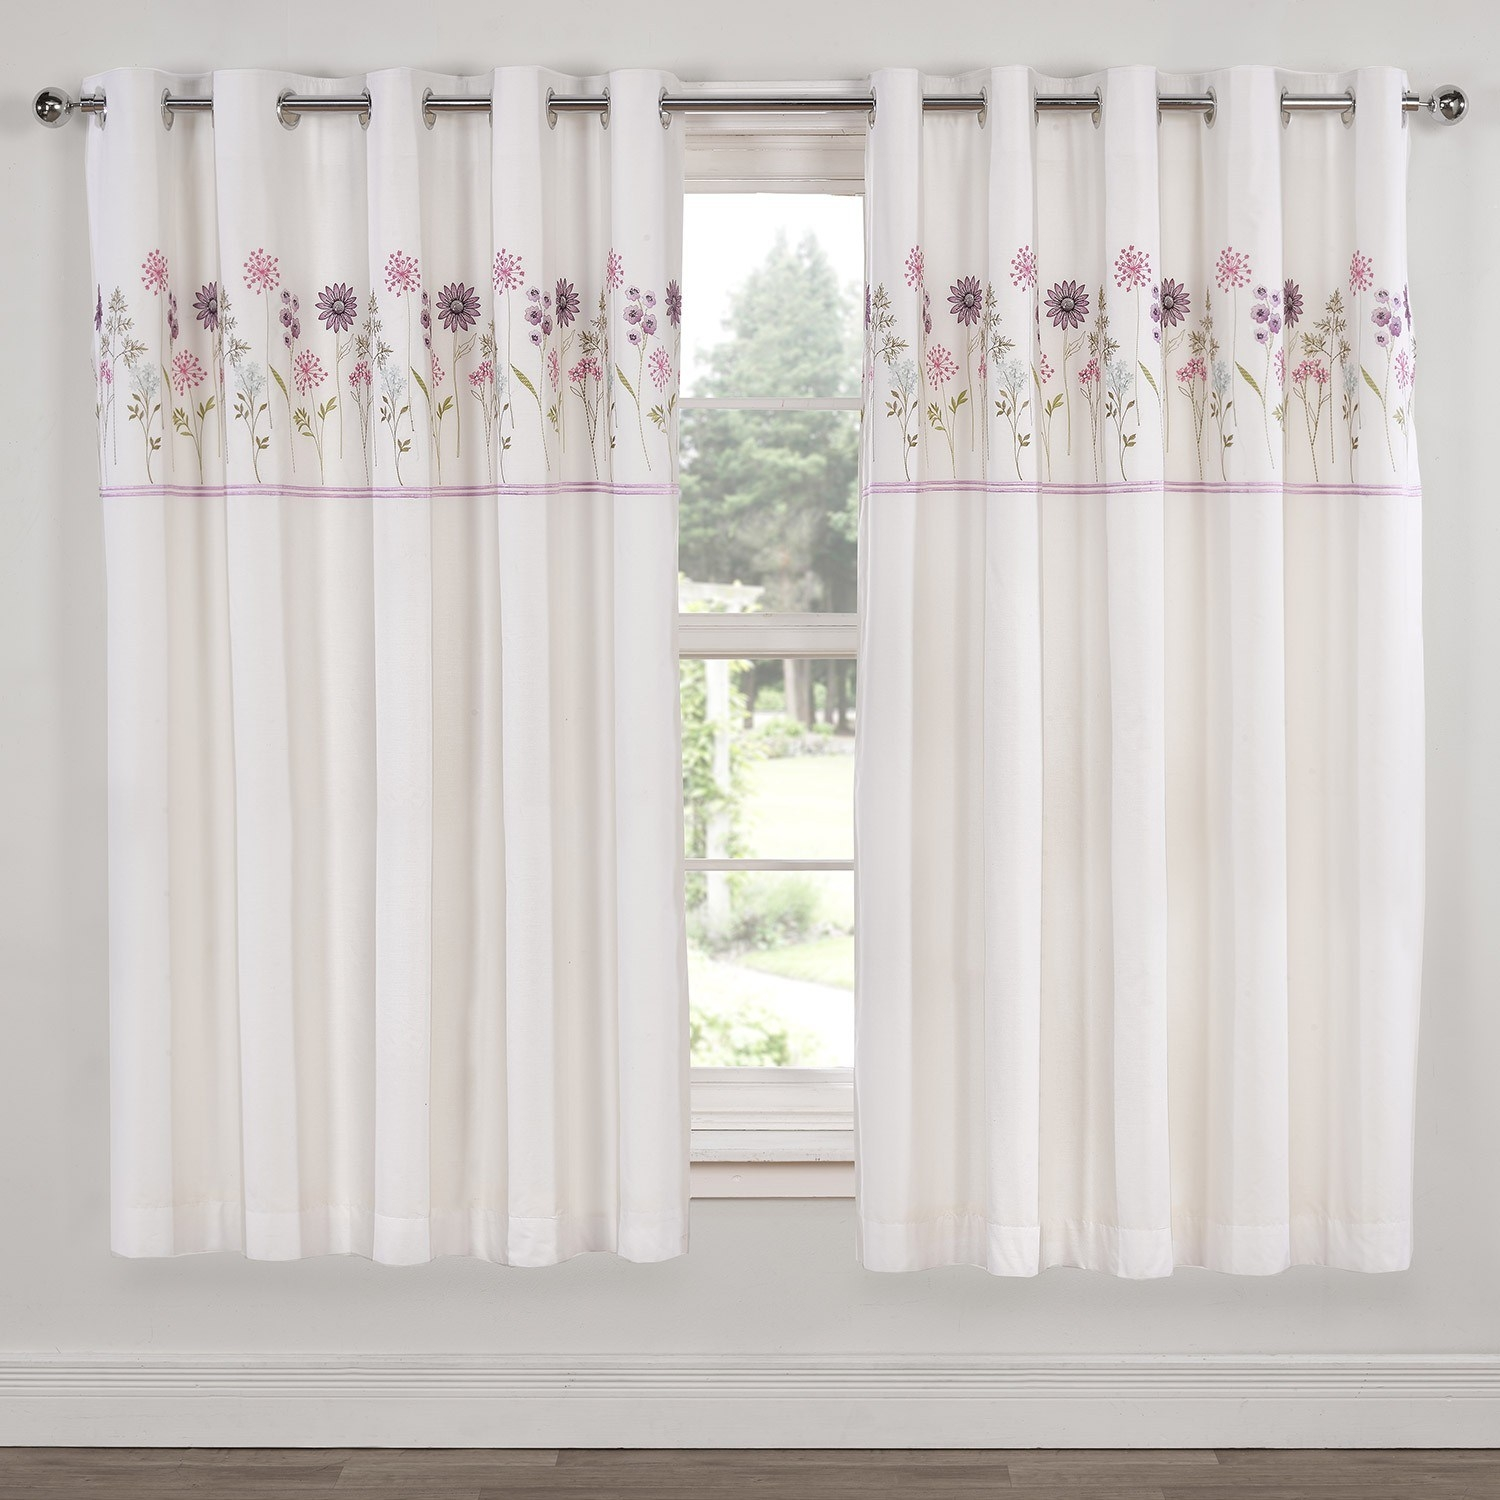 White Luxury Curtains Inside Luxury White Curtains (Image 15 of 15)